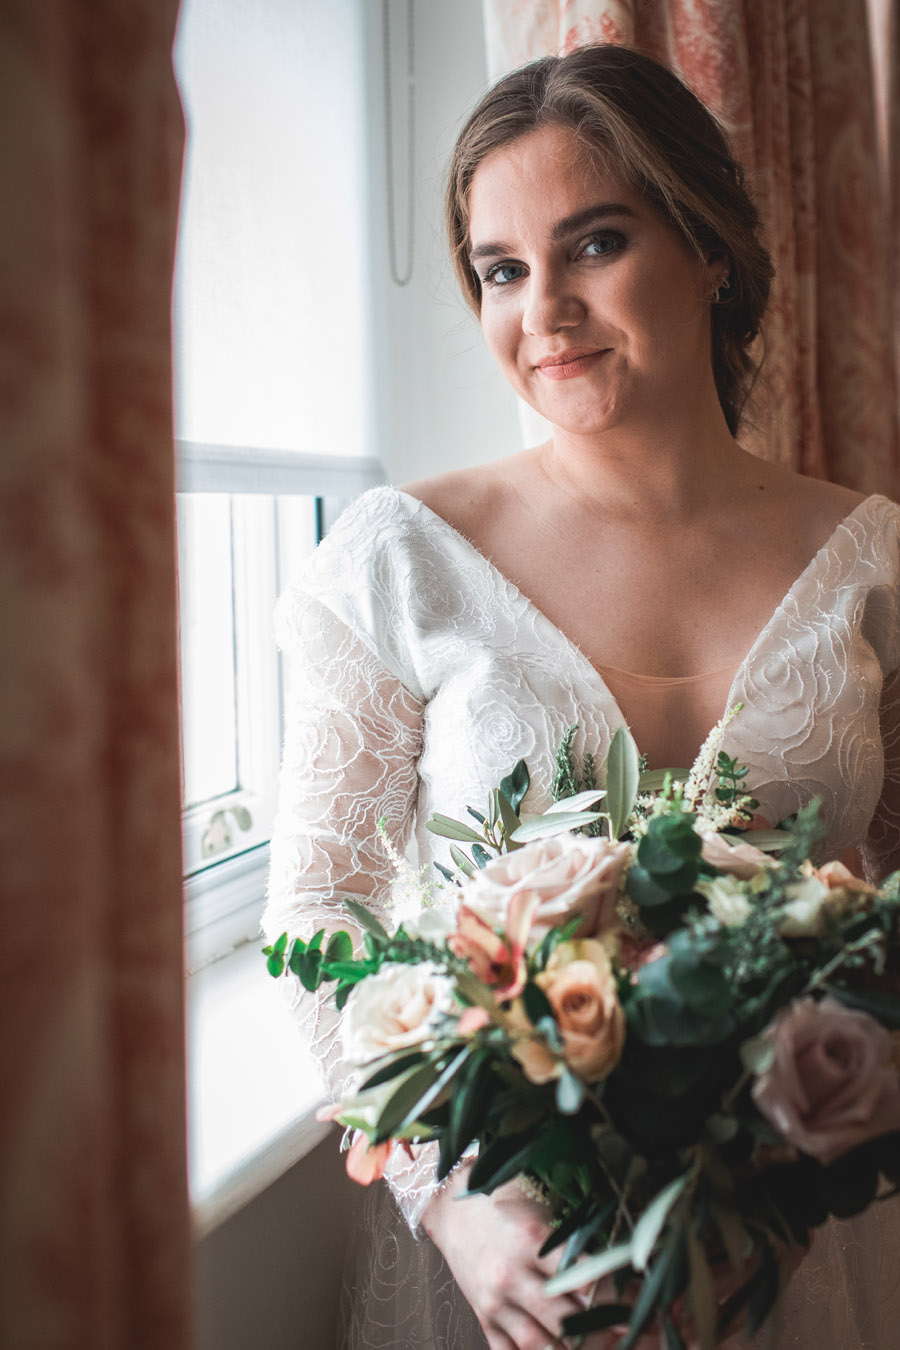 Elegant and timeless wedding style with a contemporary twist, photography by shootitmomma.co.uk (22)